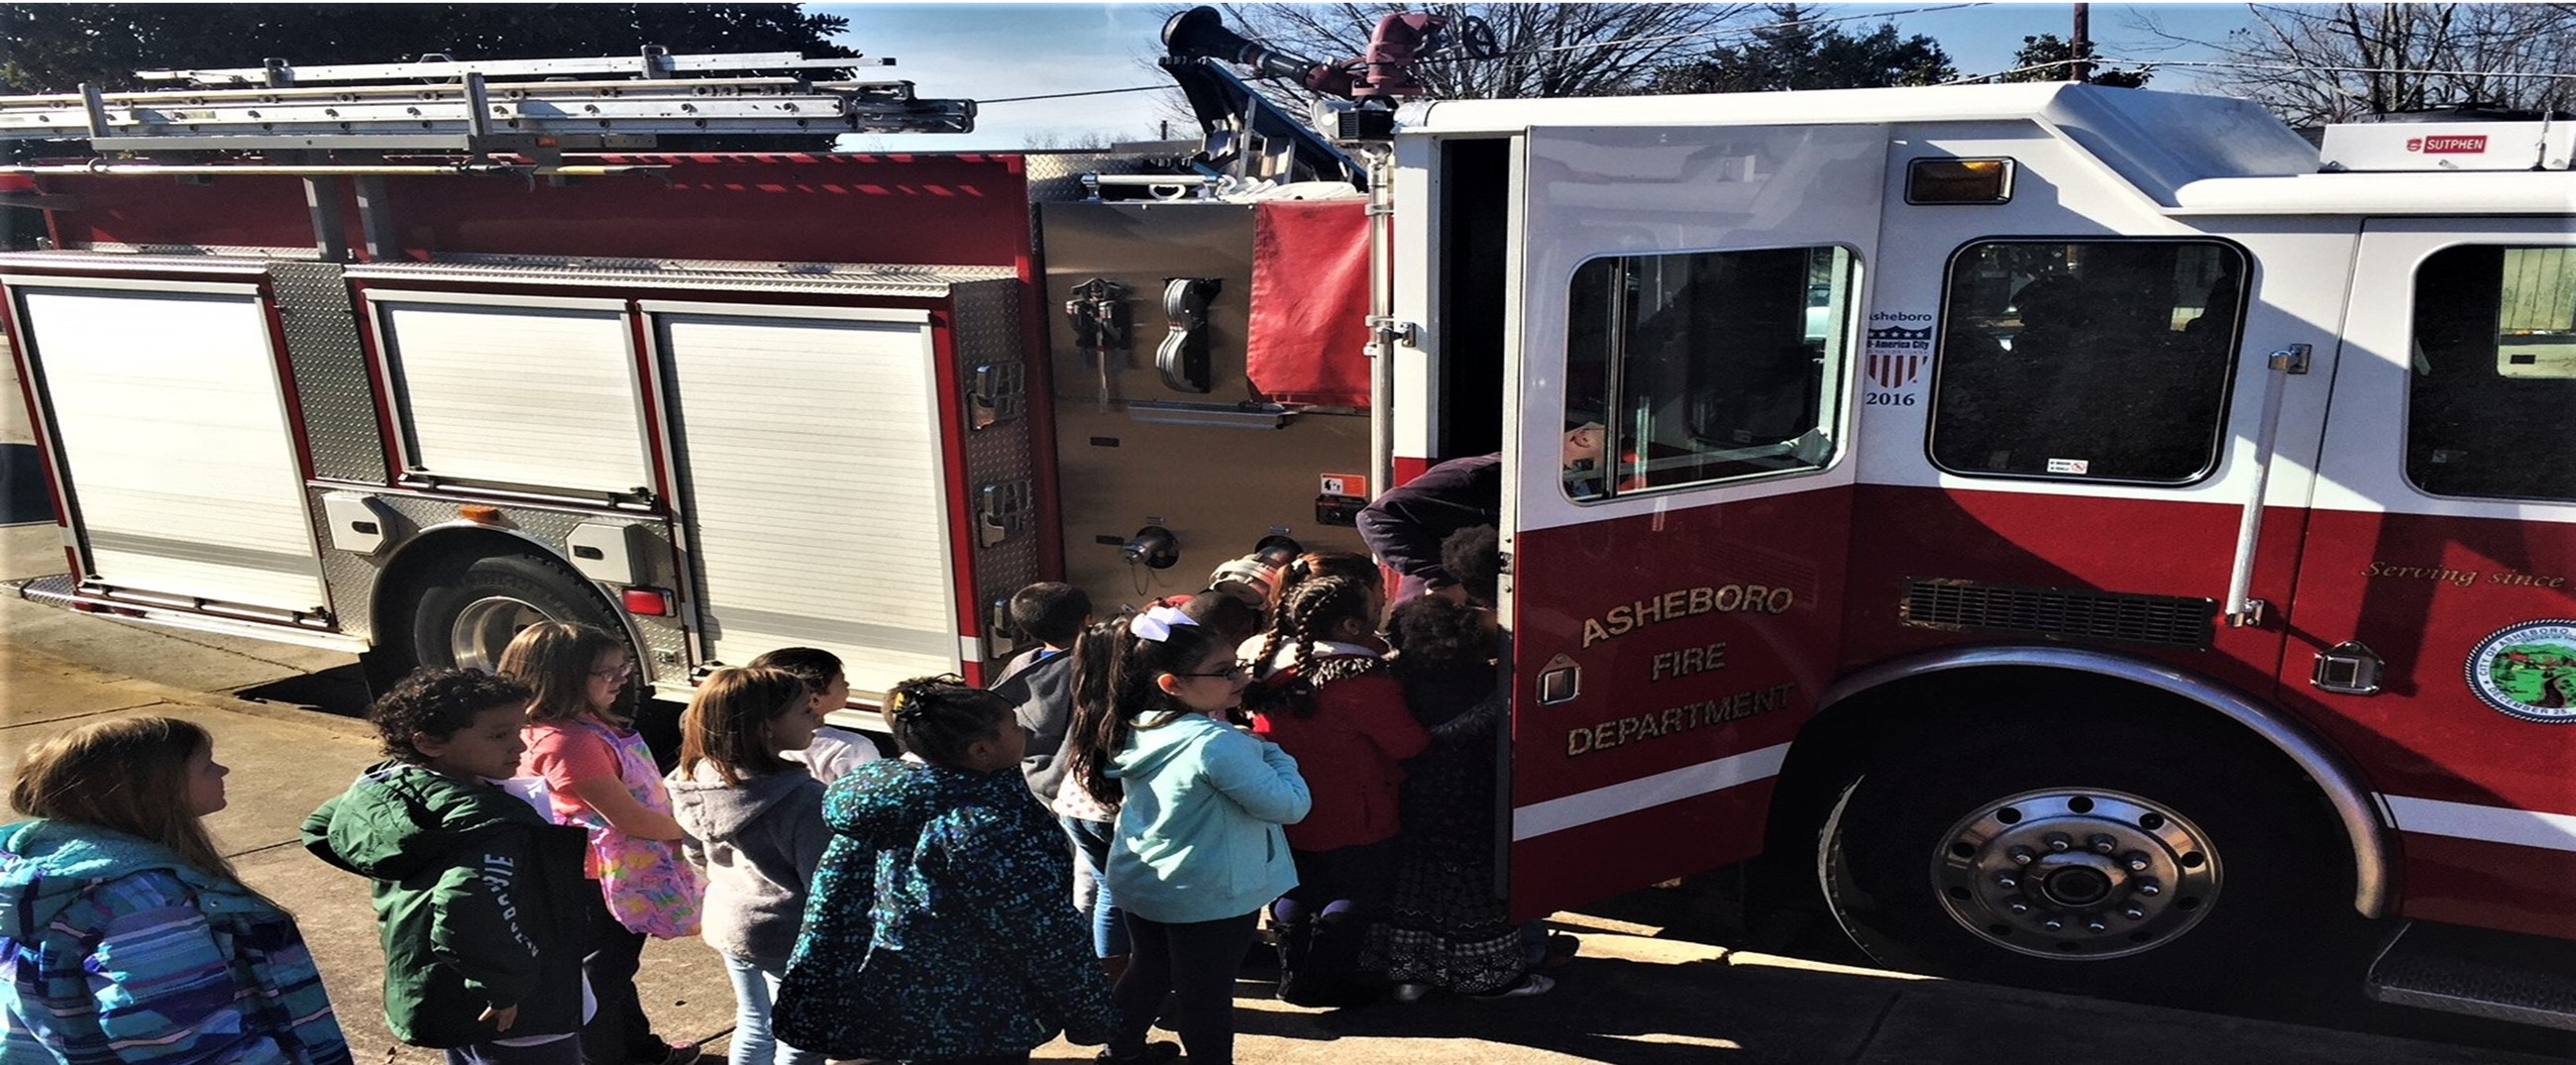 Career Day fire department visits